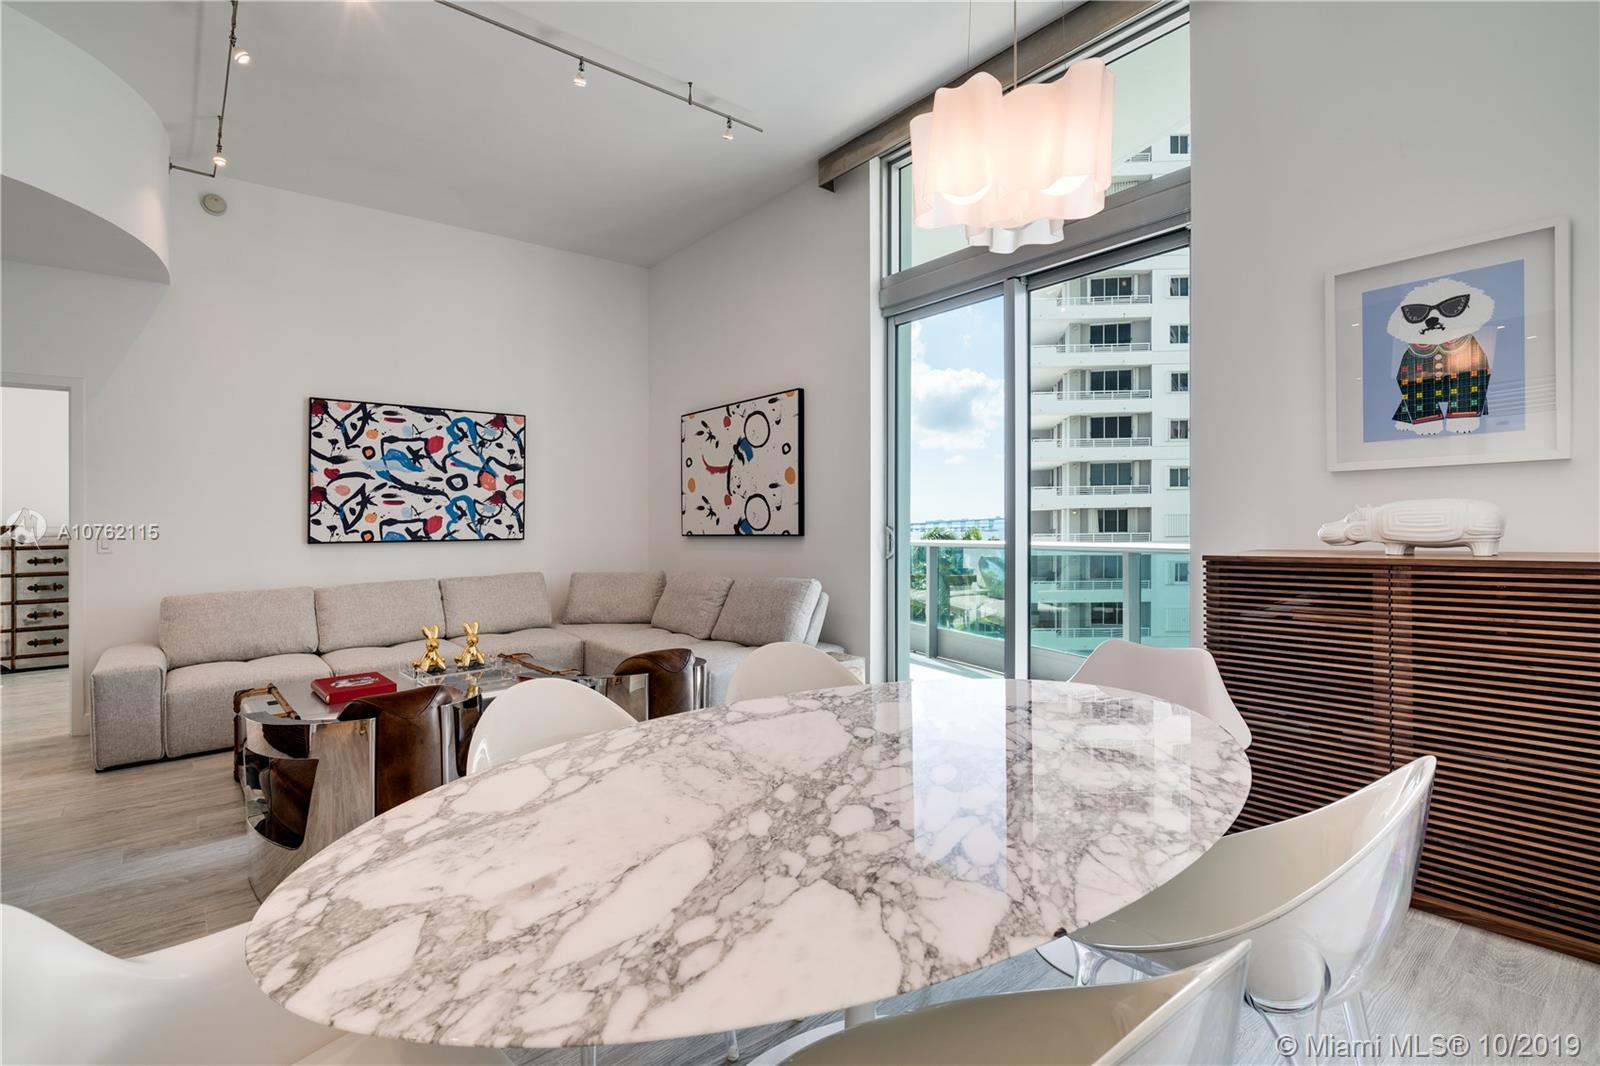 1331  Brickell Bay Dr #611 For Sale A10762115, FL